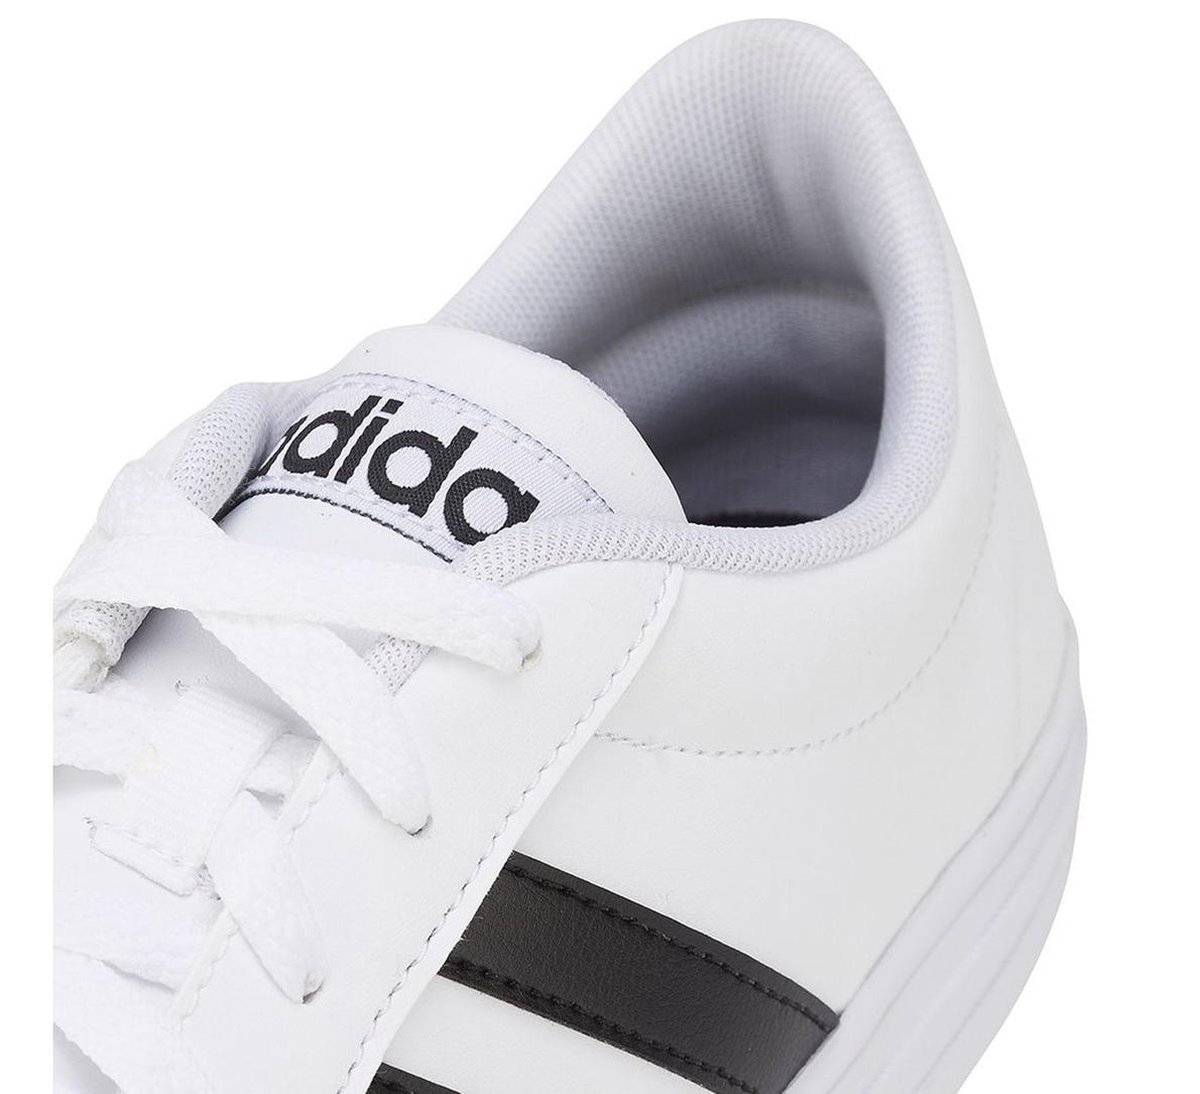 adidas VS Set Sneakers - Maat 42 2/3 - Mannen - wit/ zwart Gbe30